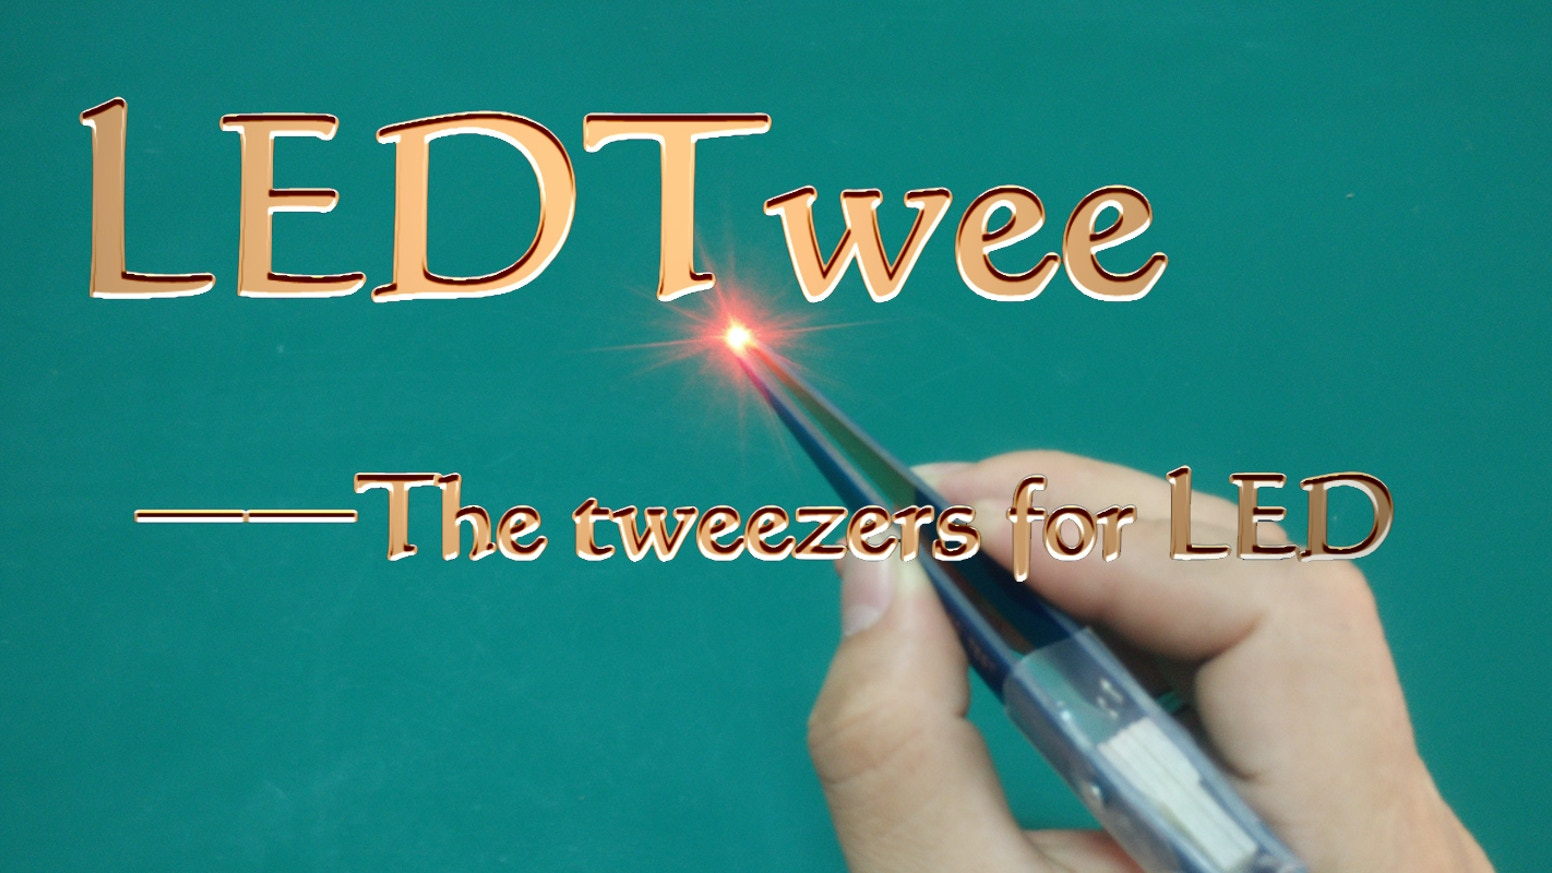 LEDTwee is the Tweezers easy to test LED and used to check anysize and color LEDs or LED Module. You should have one!!